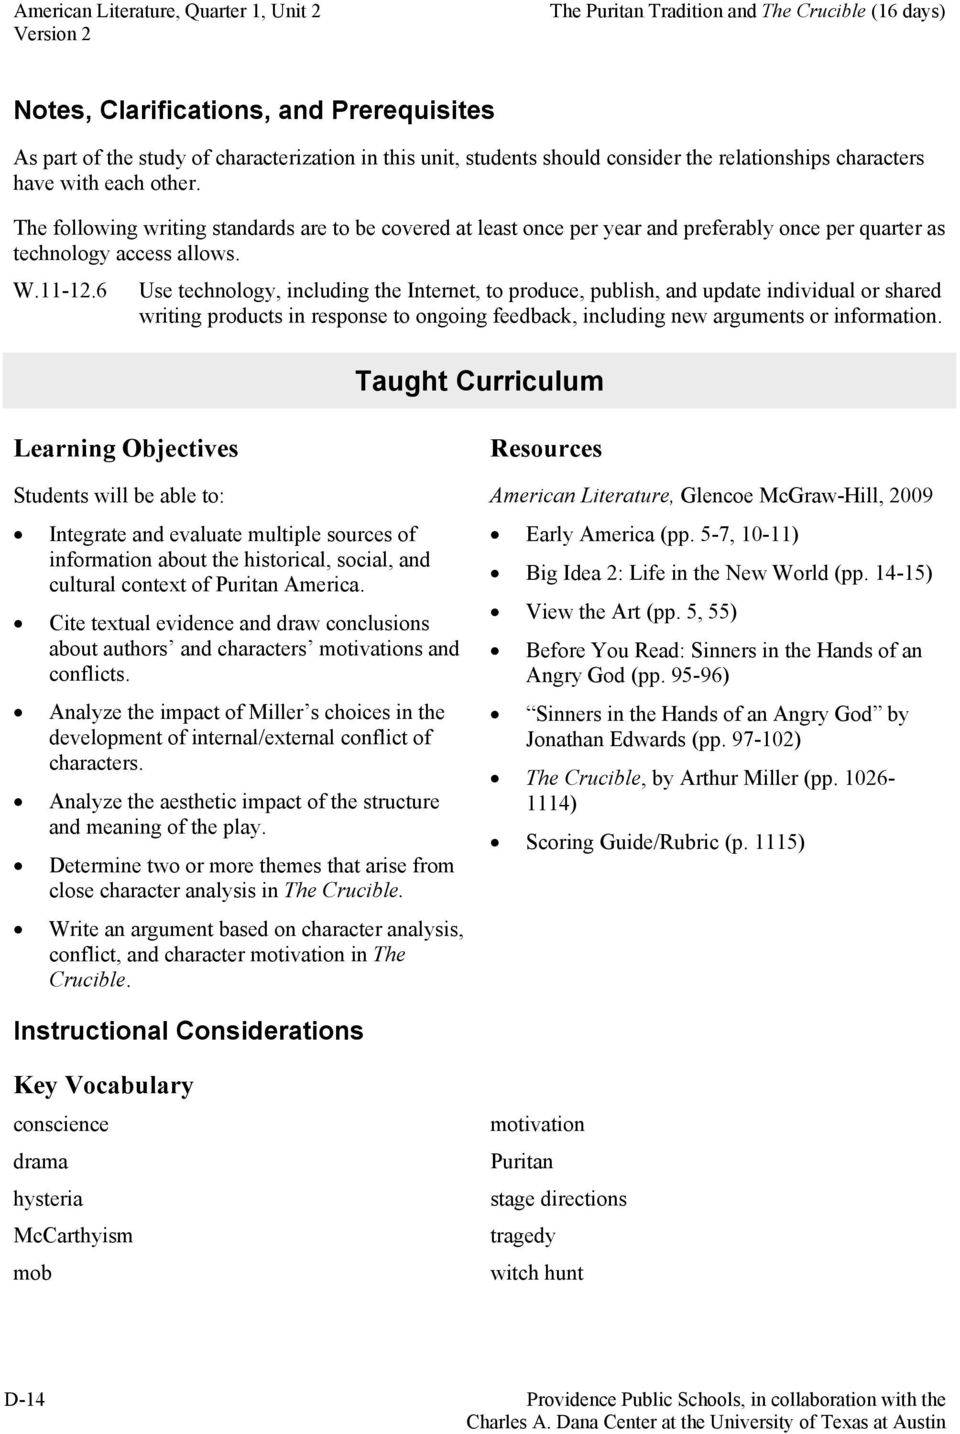 11-12.6 Use technology, including the Internet, to produce, publish, and update individual or shared writing products in response to ongoing feedback, including new arguments or information.